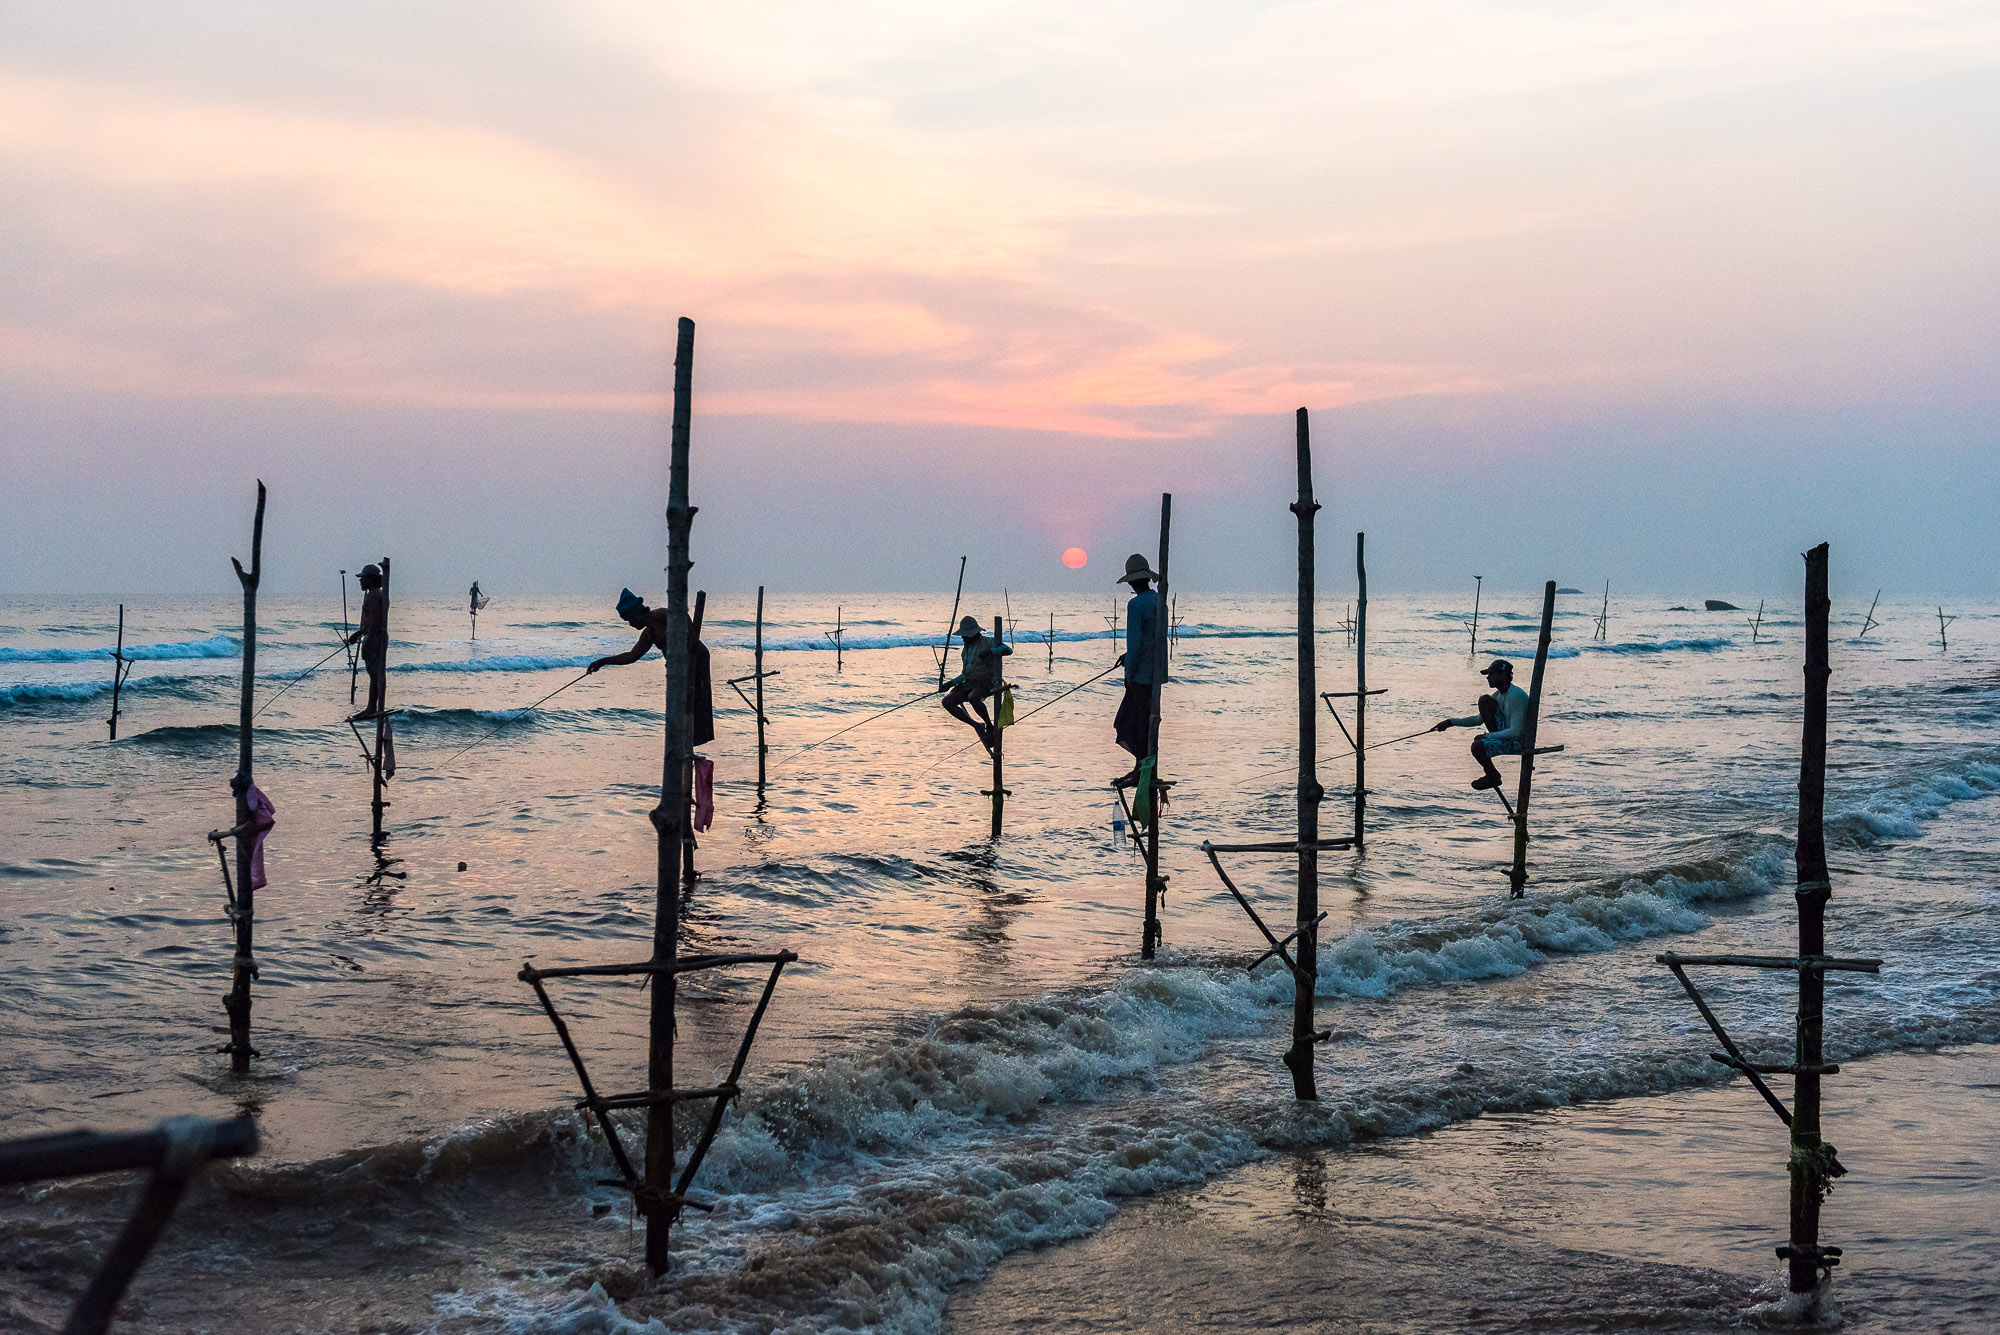 Stilt fishermen, Ahangama beach